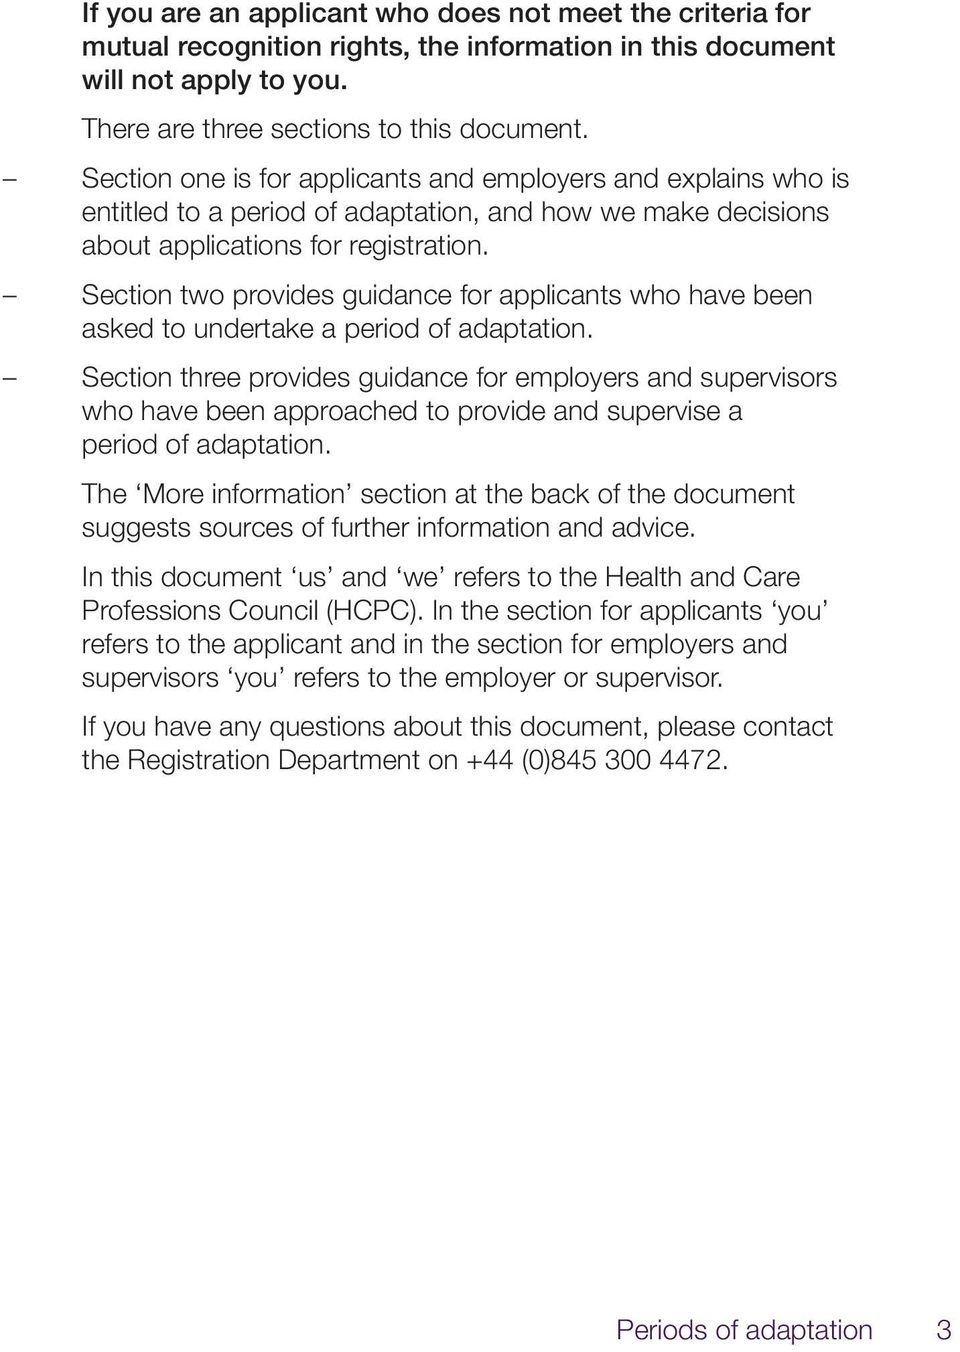 Section two provides guidance for applicants who have been asked to undertake a period of adaptation.